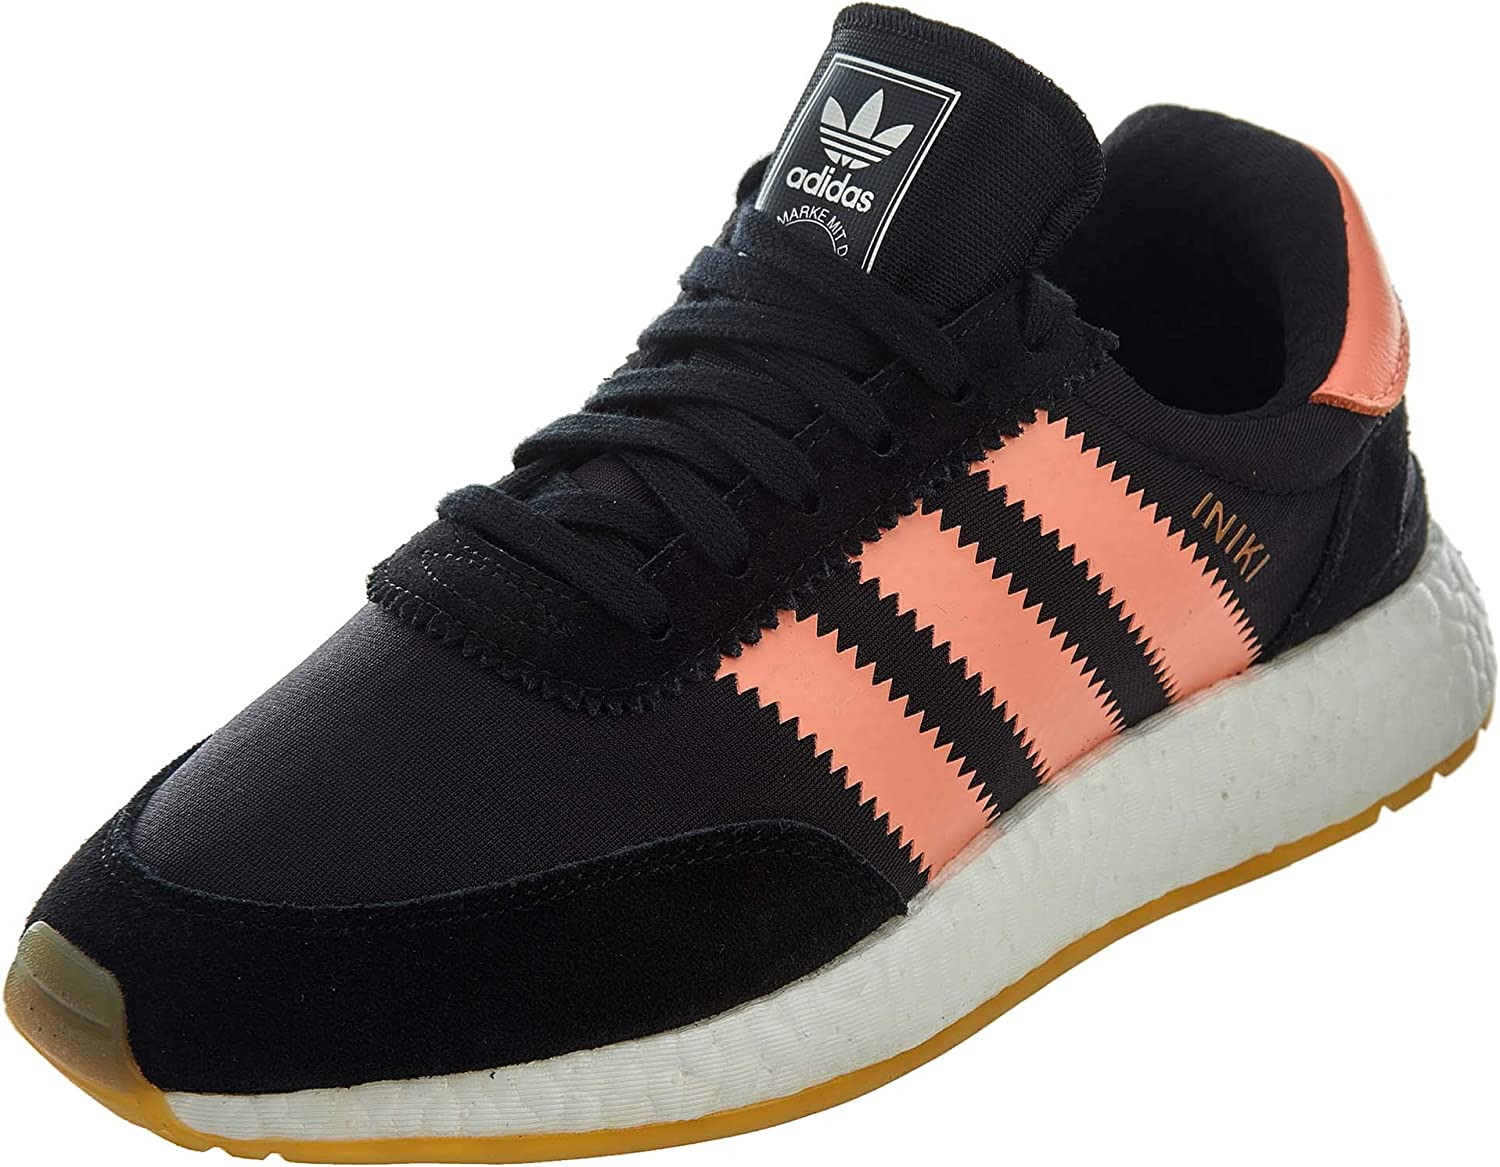 adidas Womens I-5923 Casual Sneakers